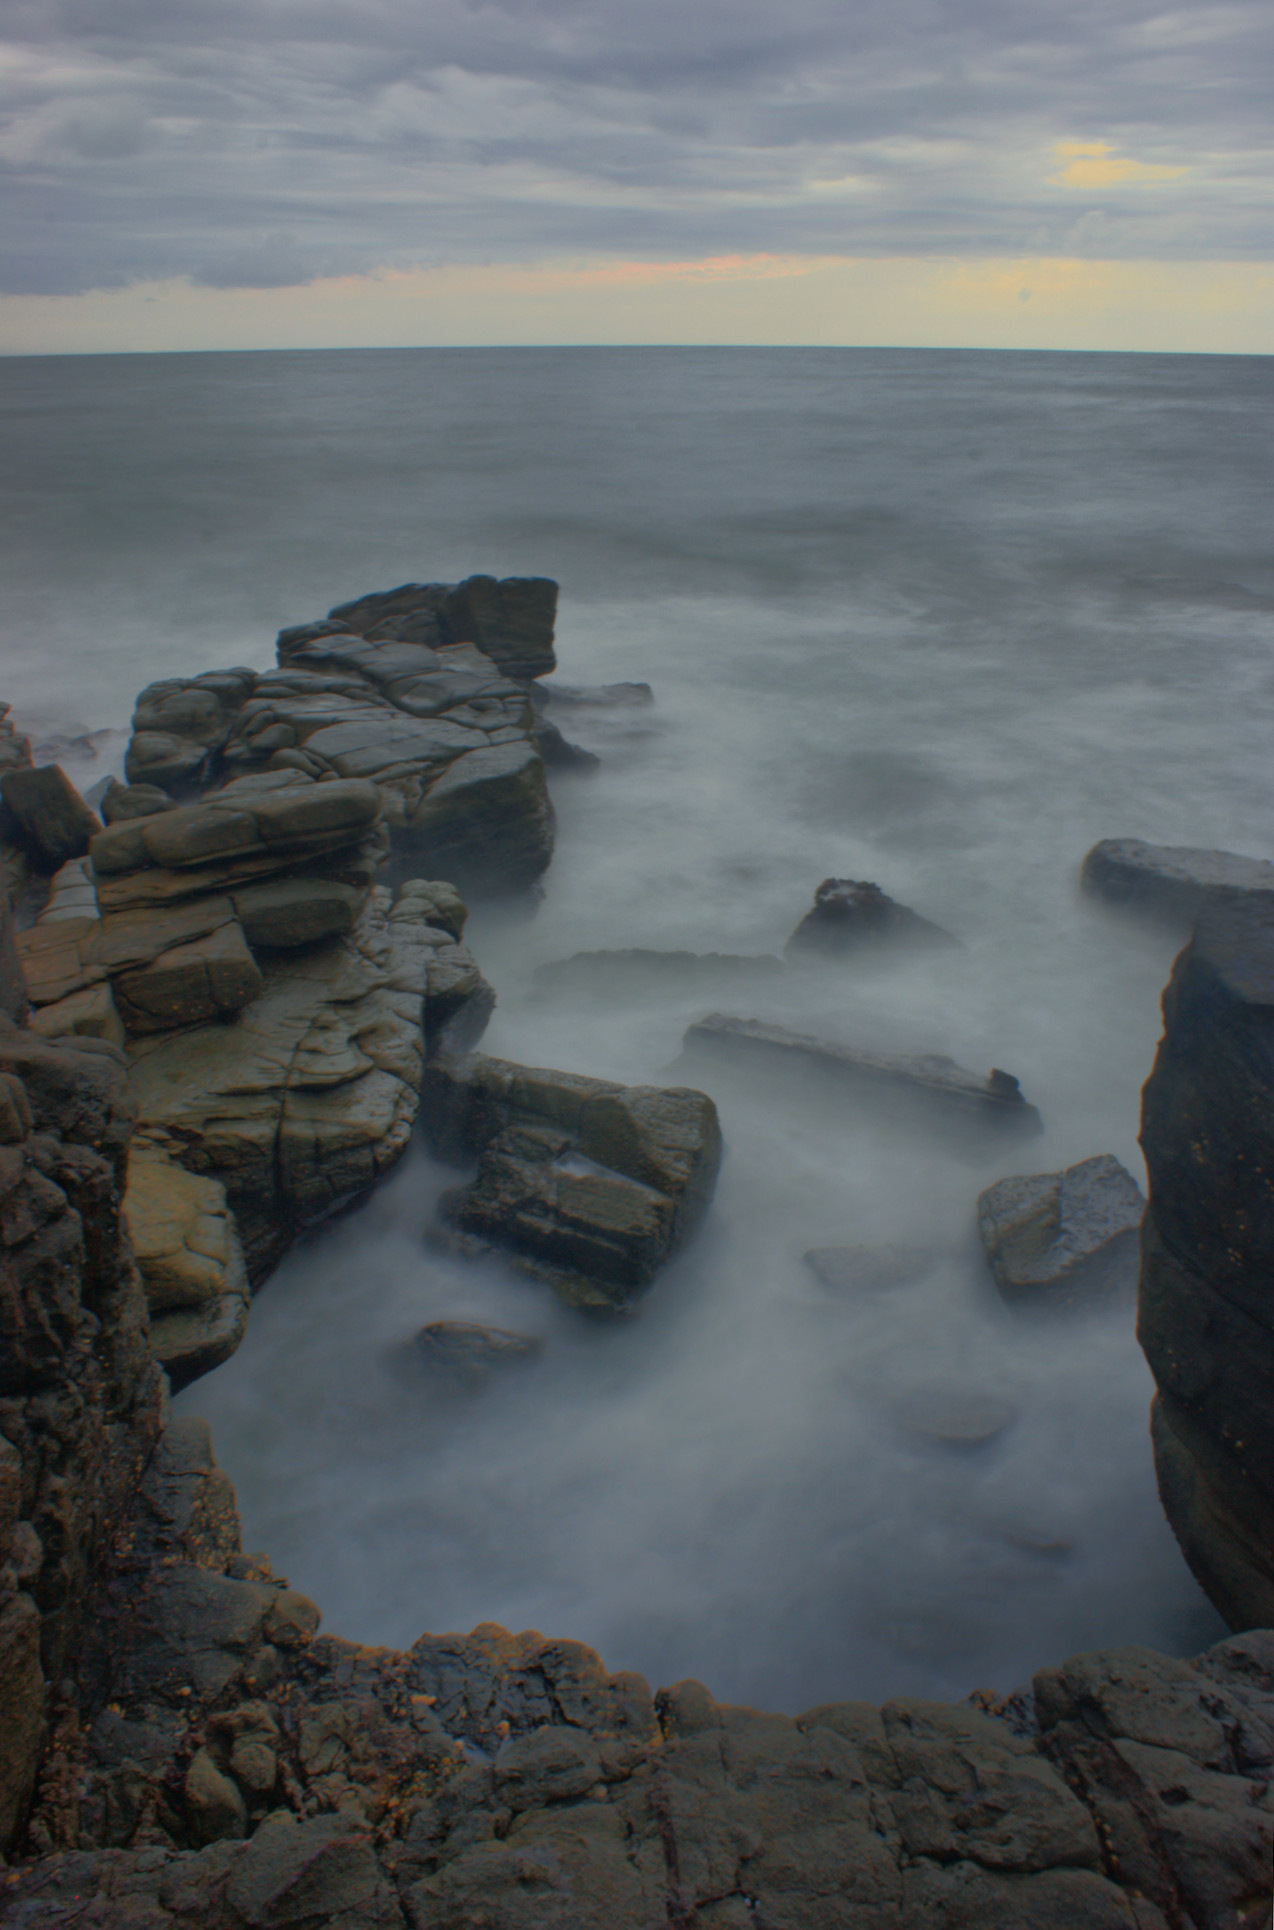 http://www.images.scottphotographics.com/shot-of-the-day/%234/On-the-rocks-Mooloolaba.jpg